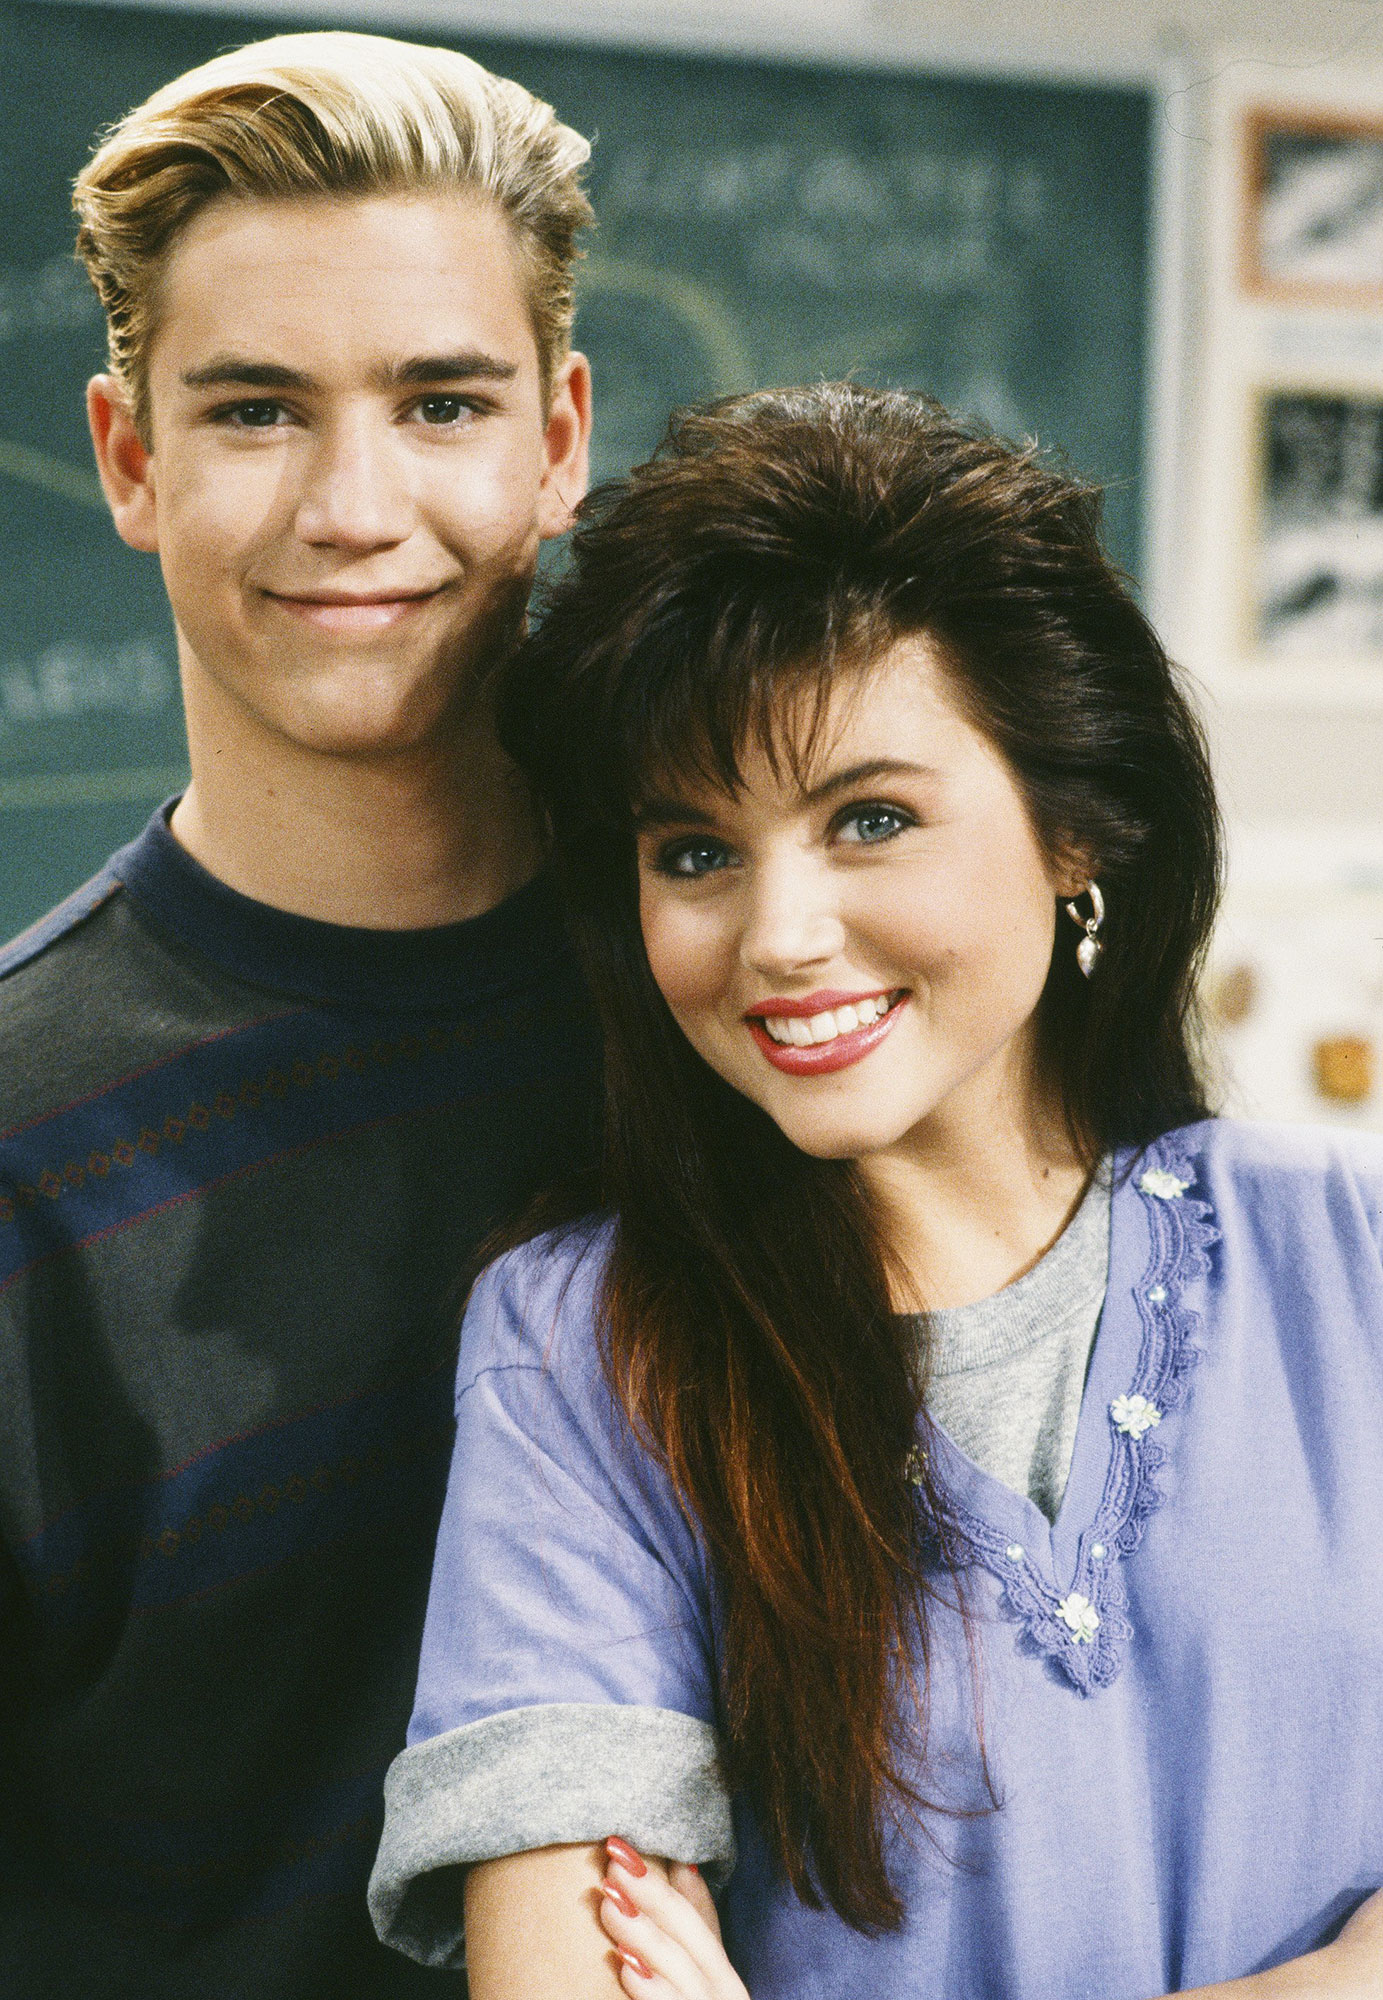 Best TV Couples Saved By The Bell Mark-Paul Gosselaar Tiffani Thiessen - Show: Saved by the Bell Actors: Mark-Paul Gosselaar and Tiffani Thiessen Network: NBC Seasons: 4